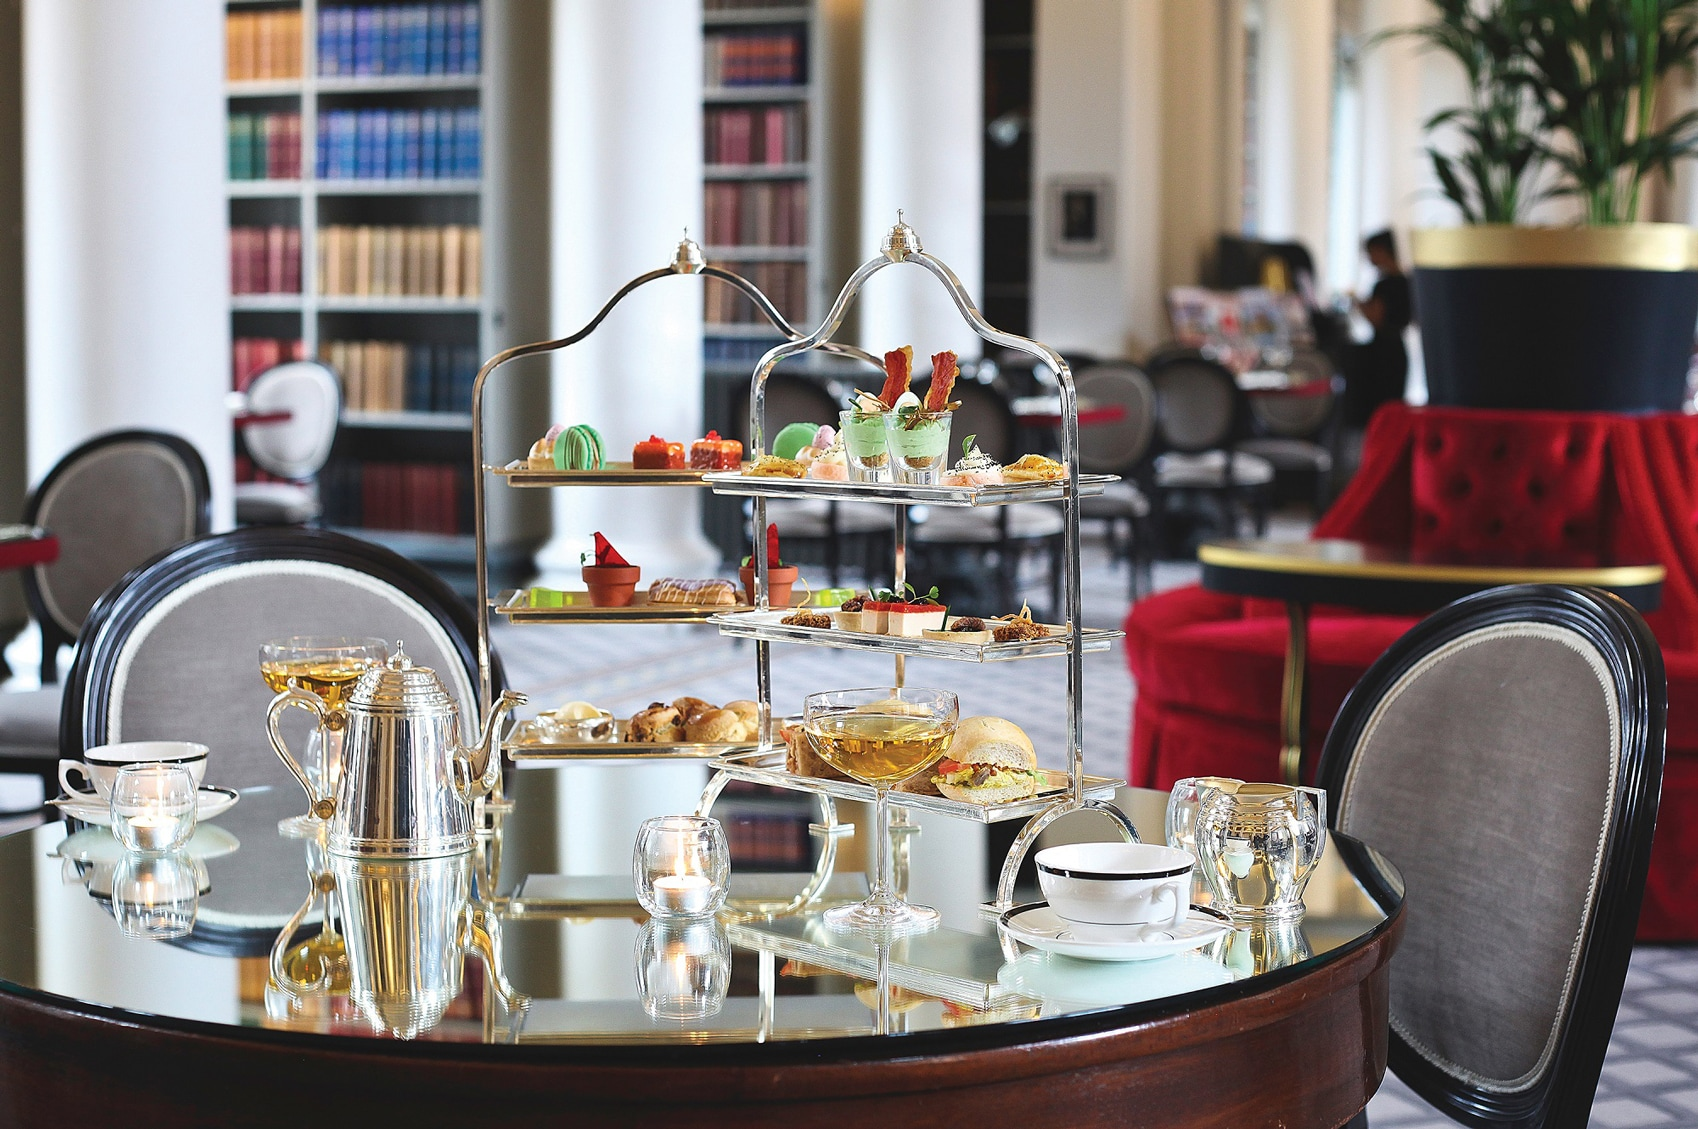 afternoon tea UK Colonnades-Spring-Afternoon-Tea-11-ed-sml-CREDIT-Colonnades-